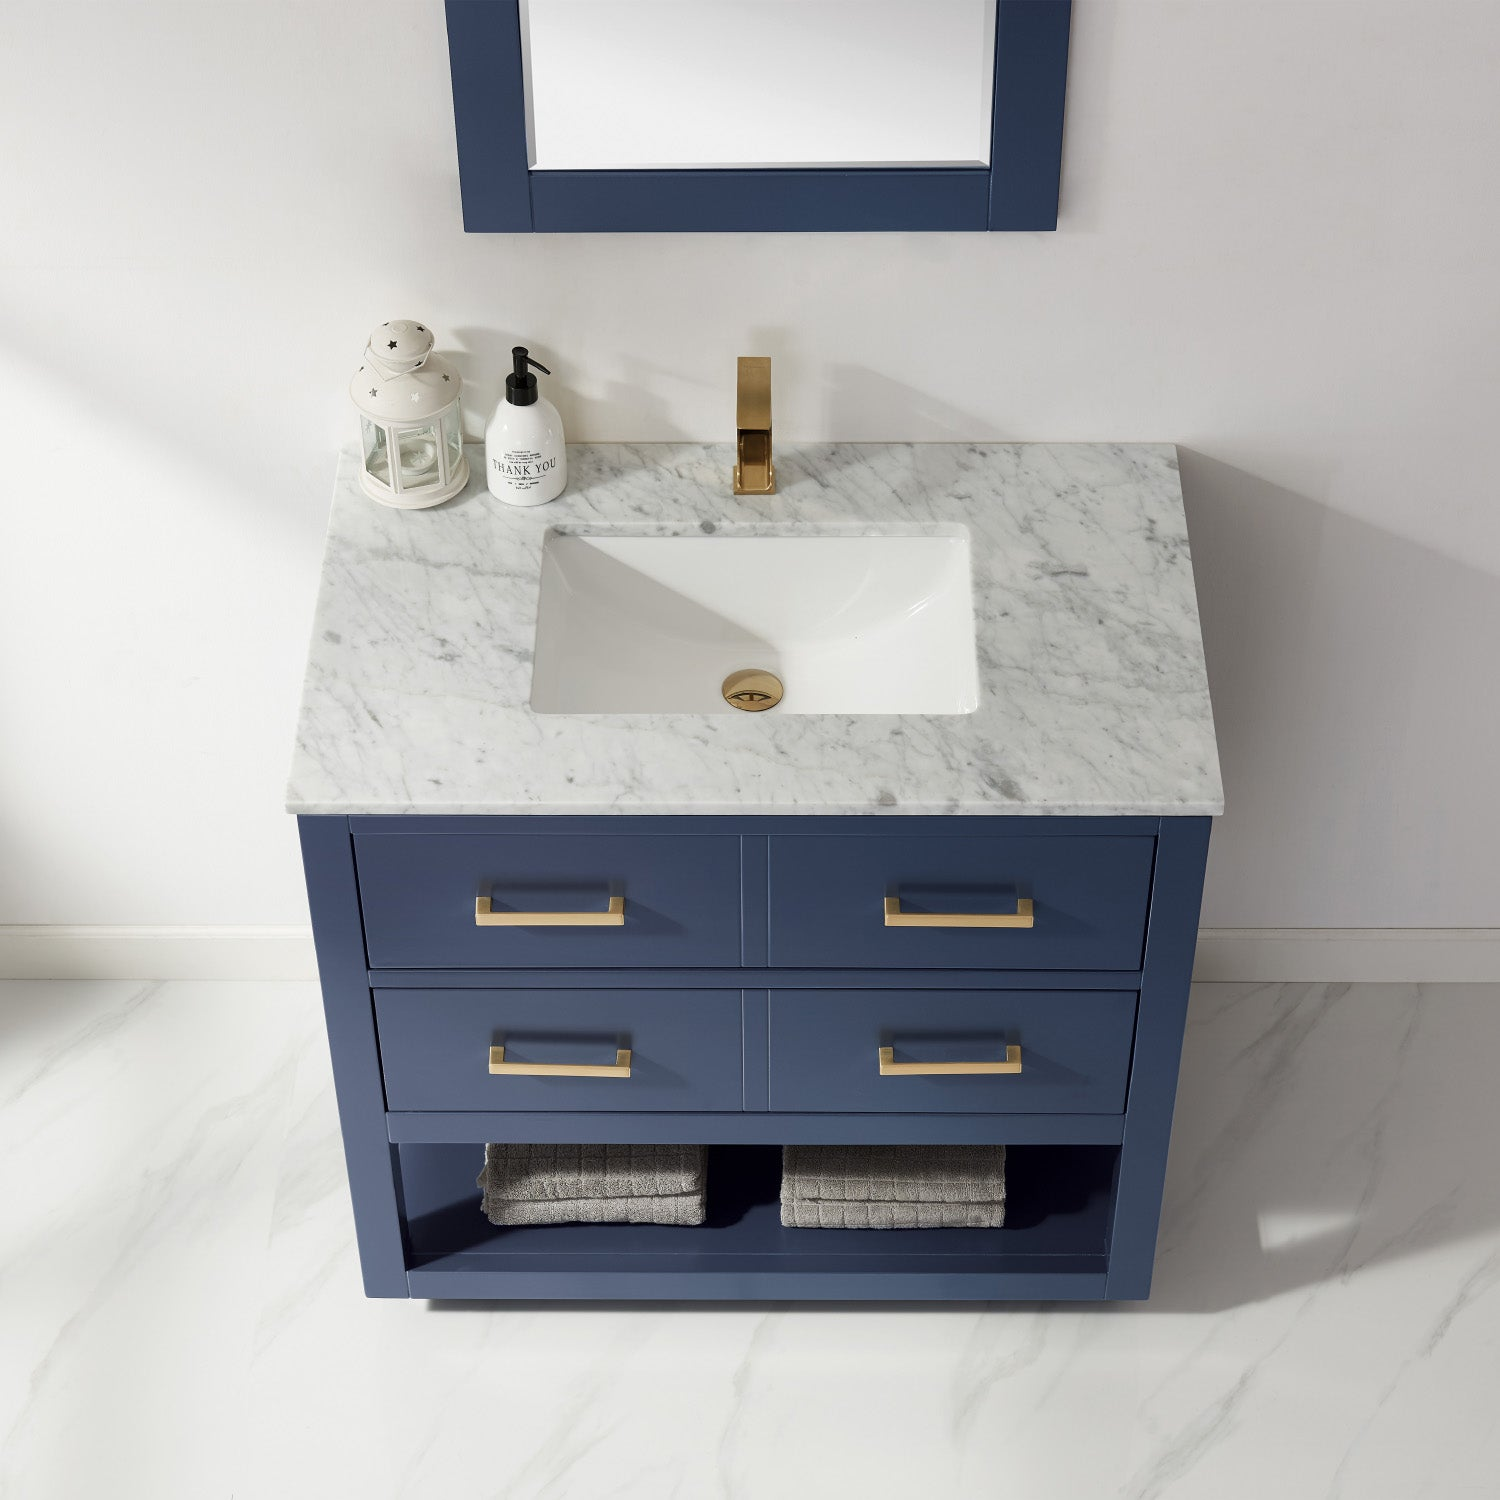 "Remi 36"" Single Bathroom Vanity Set in Royal Blue and Carrara White Marble Countertop with Mirror"